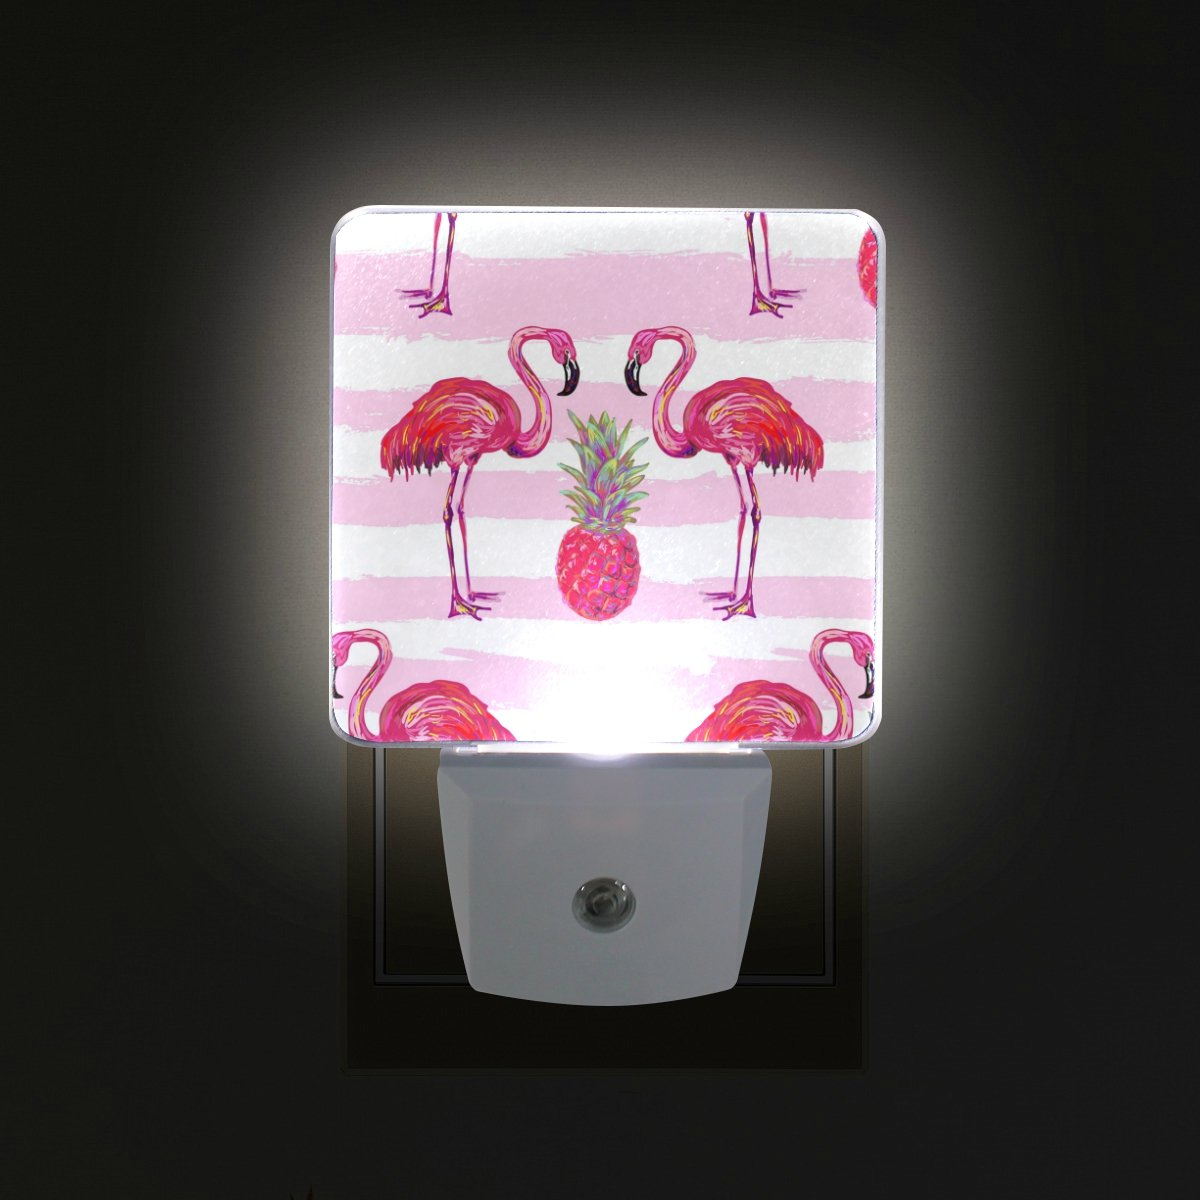 GIOVANIOR Summer Tropical Flamingo Pineapple Pink Plug in Dusk to Dawn Light Sensor LED Night Light Wall Light for Bedroom, Bathroom, Hallway, Stairs, Energy Efficient